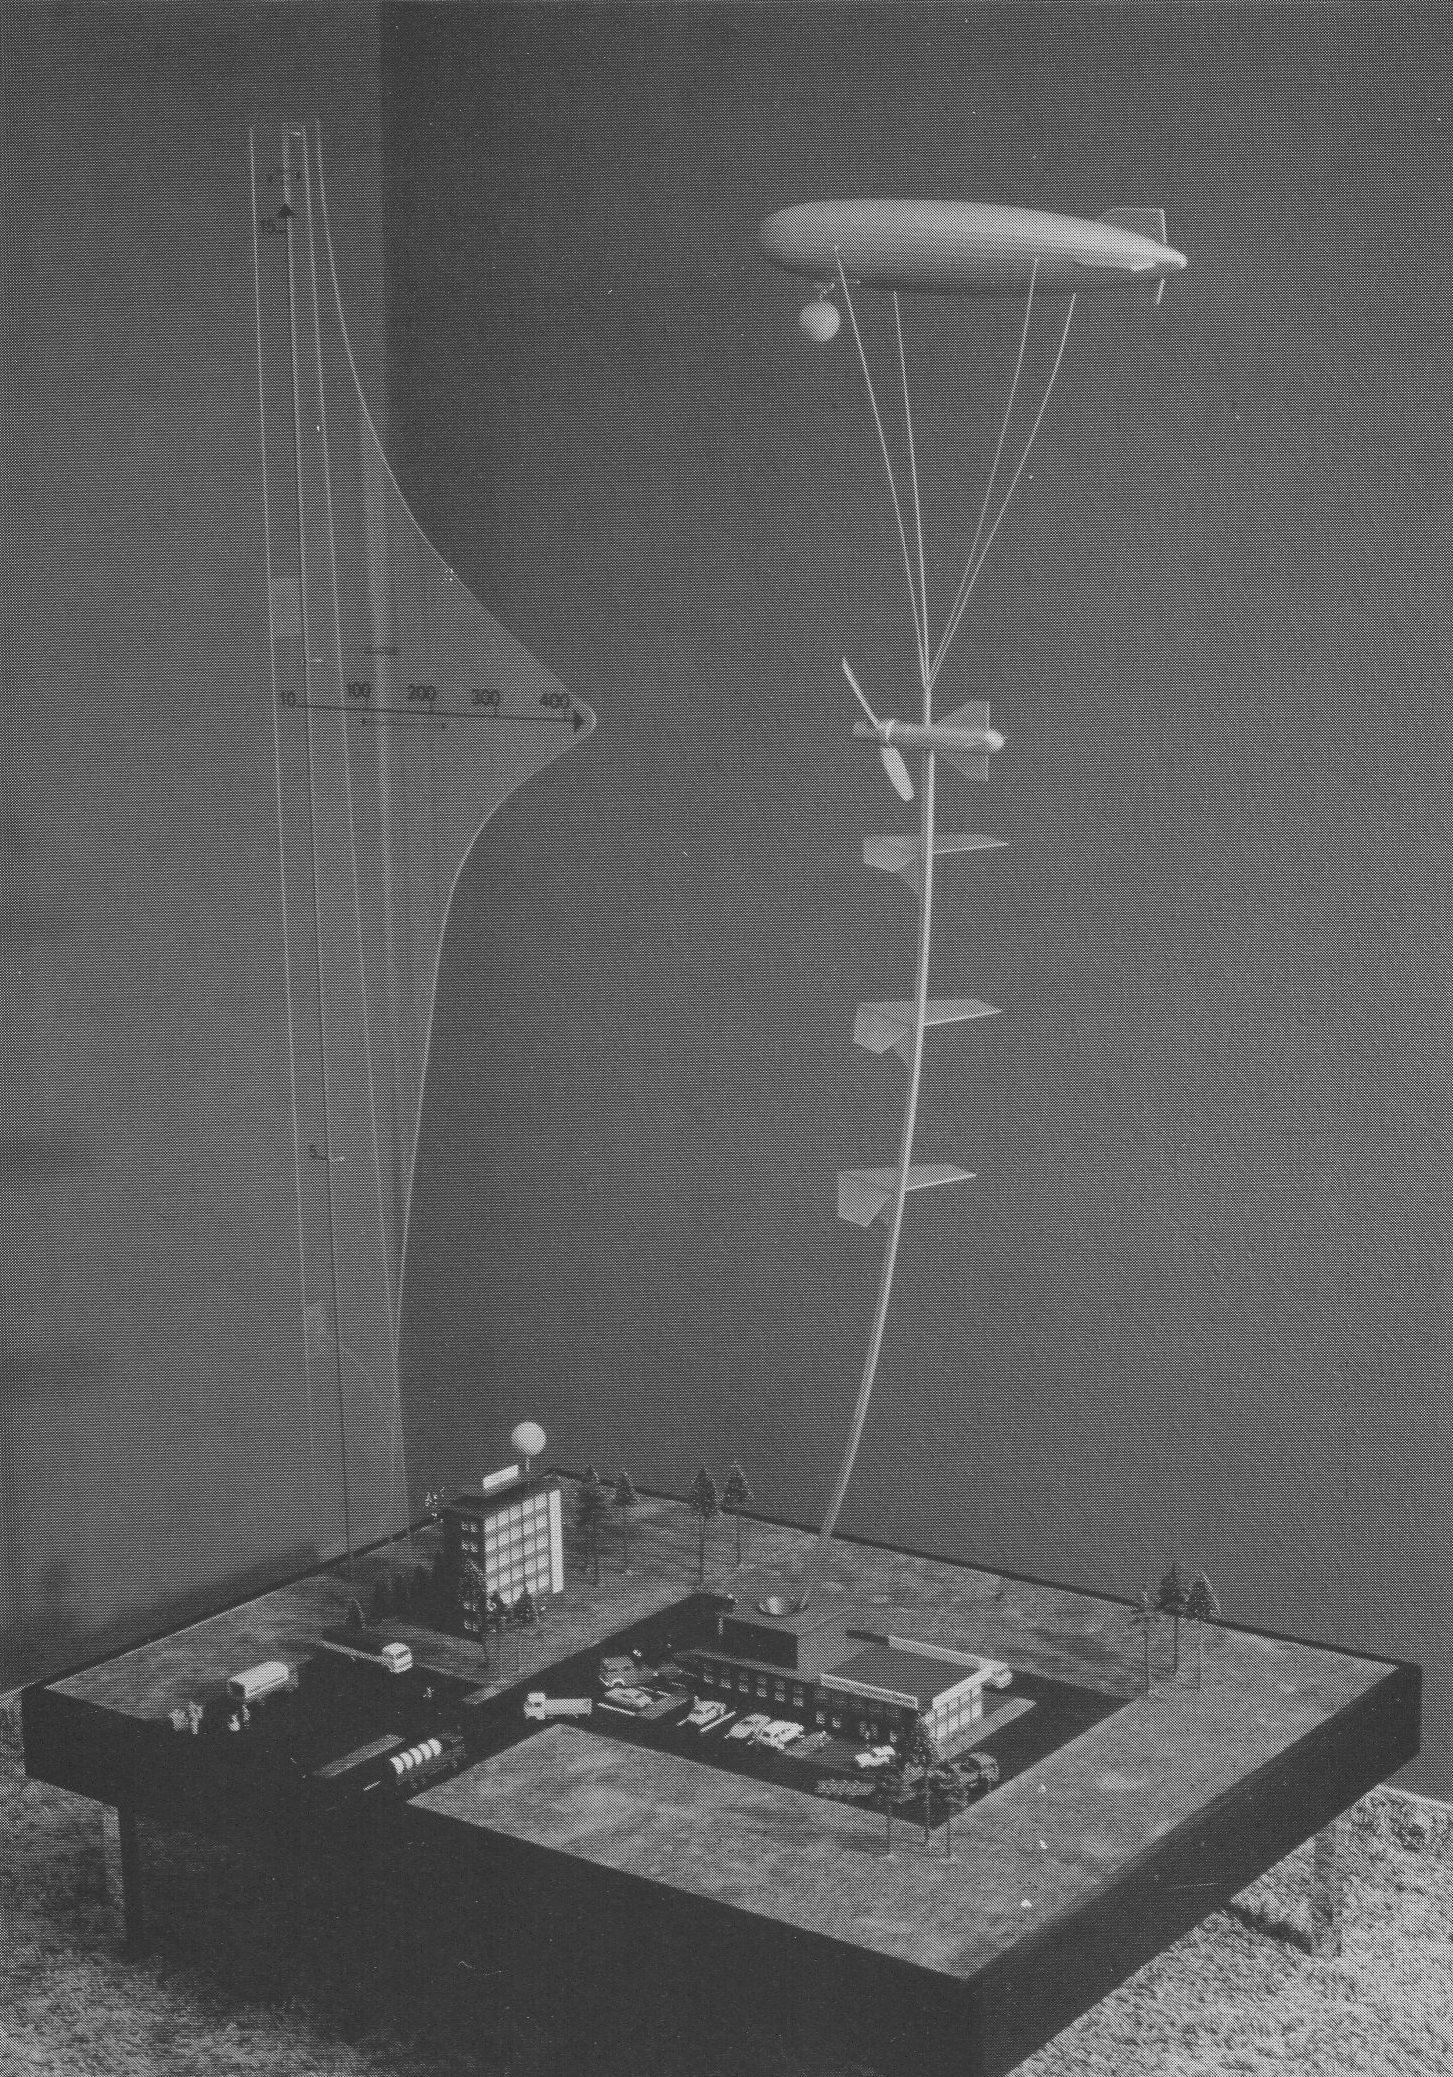 Kite wind power plant - Hermann Oberth